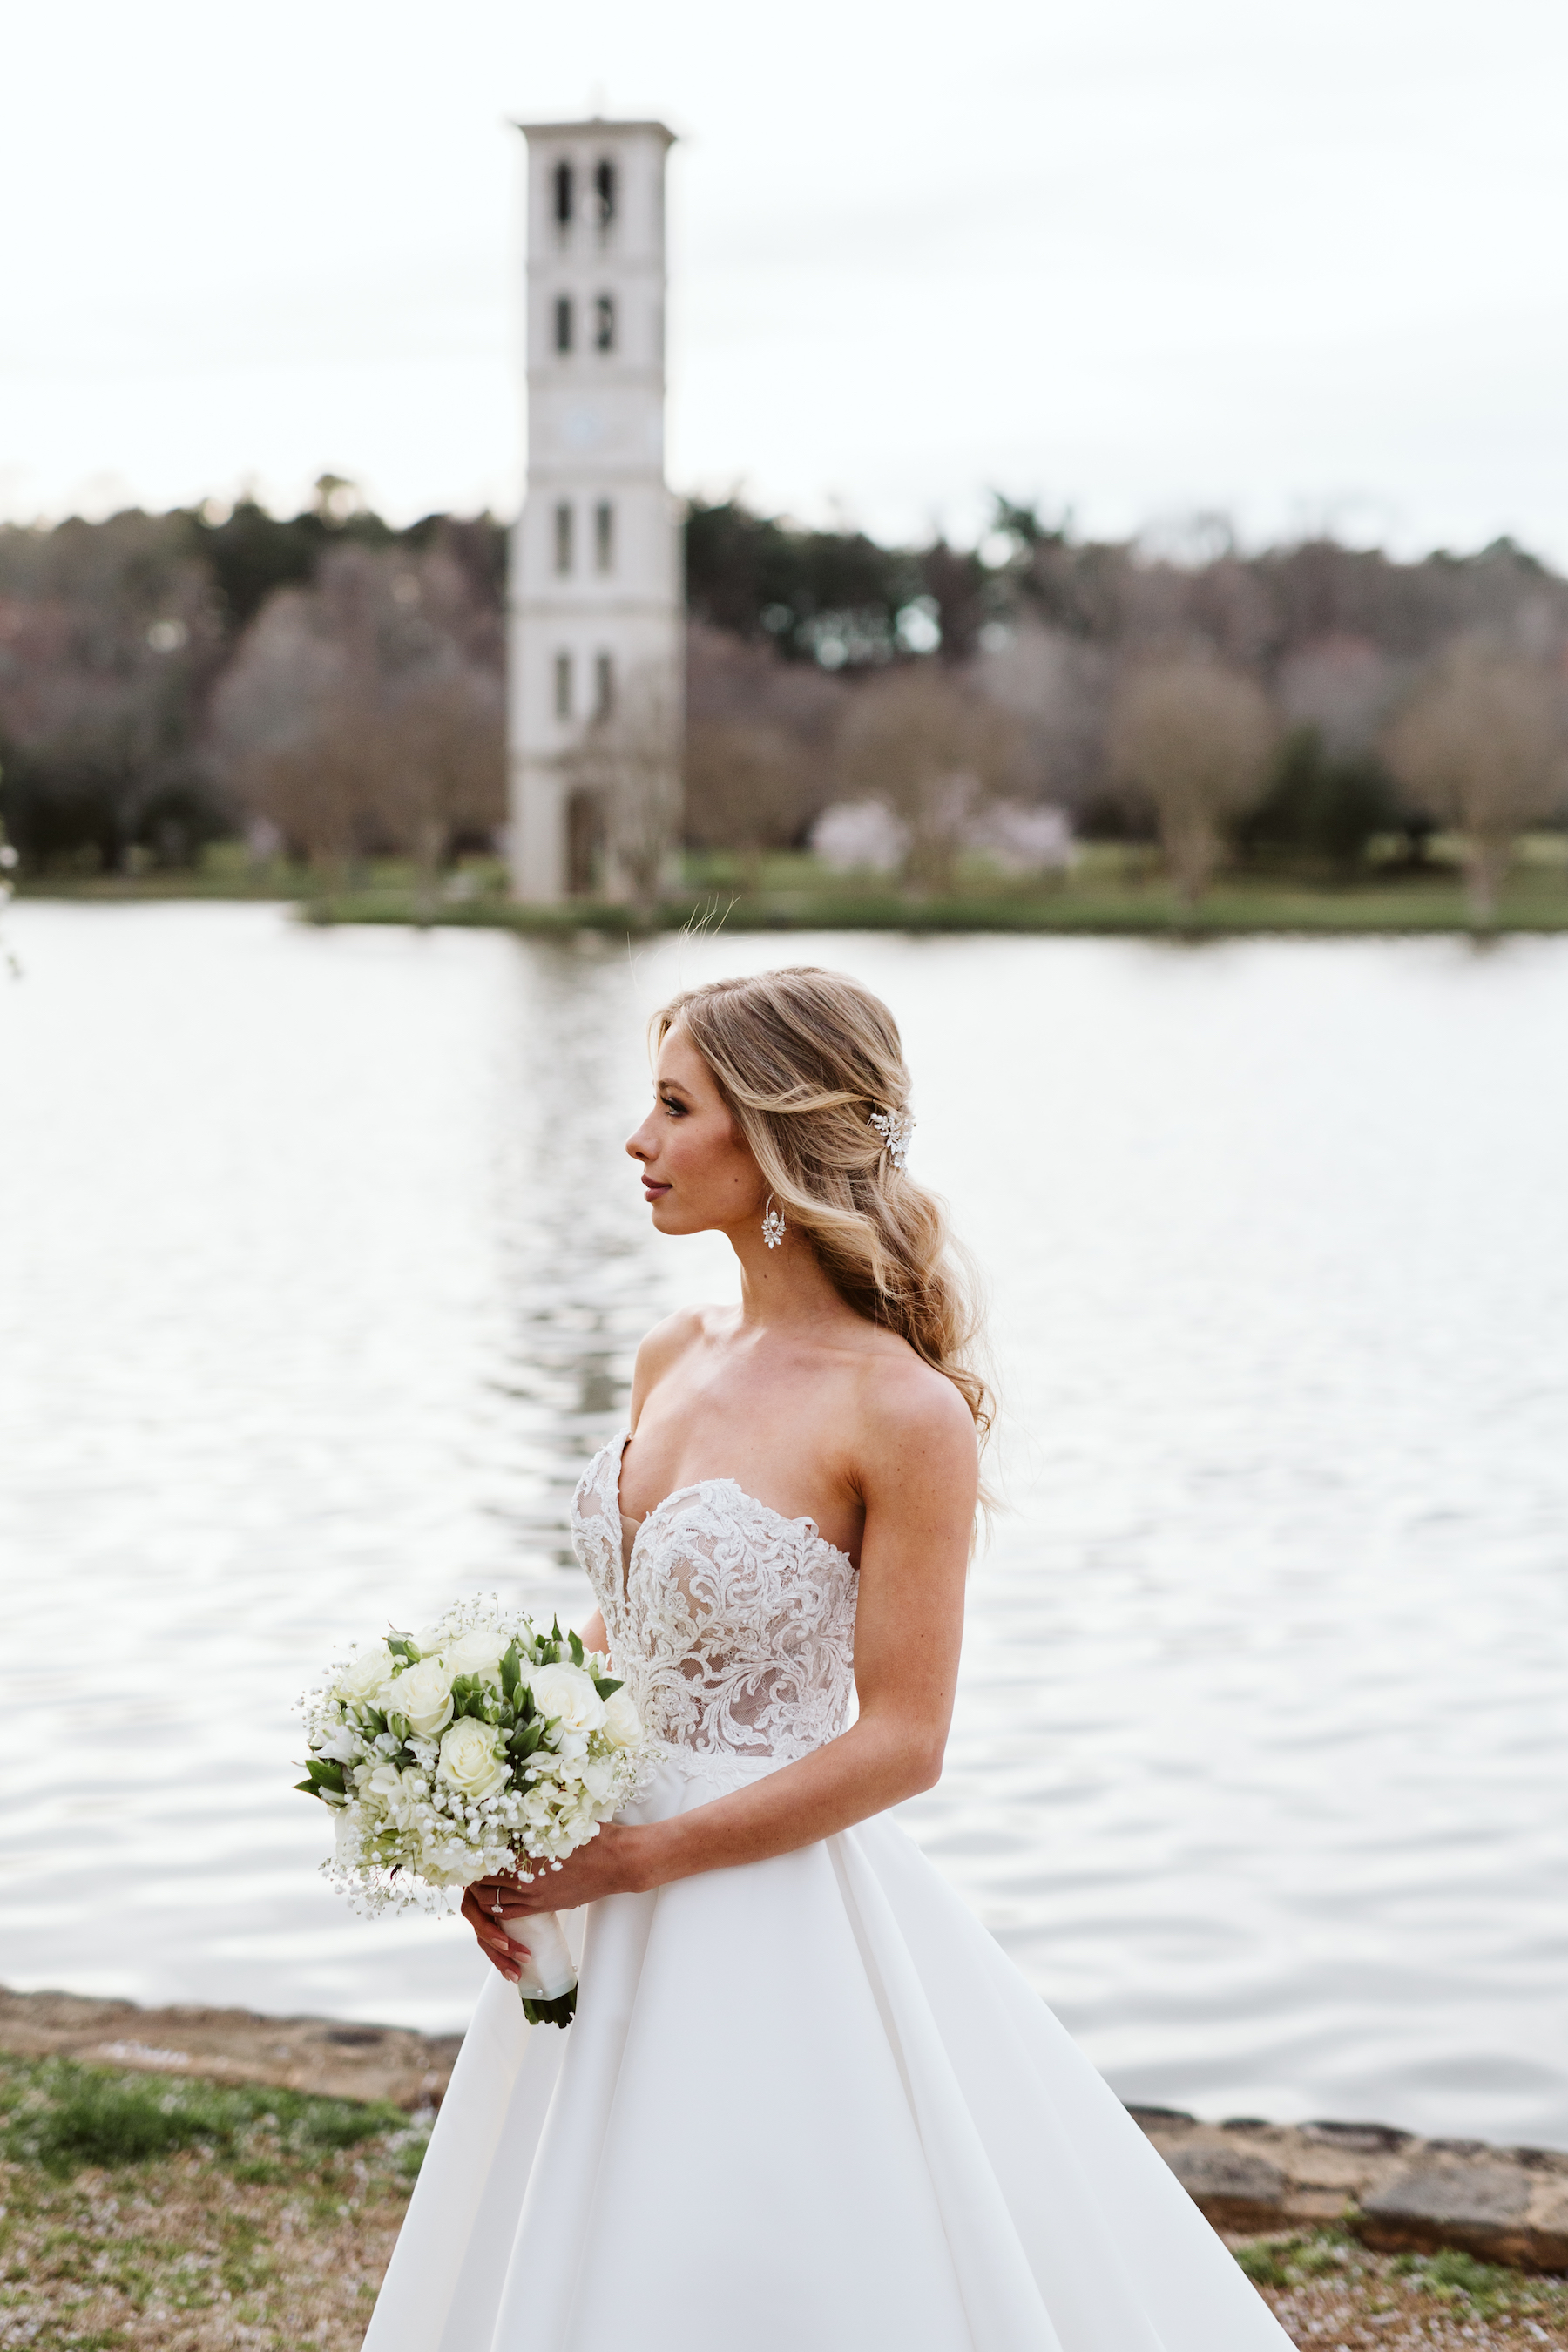 furman-university-bridals-paige-212.JPG